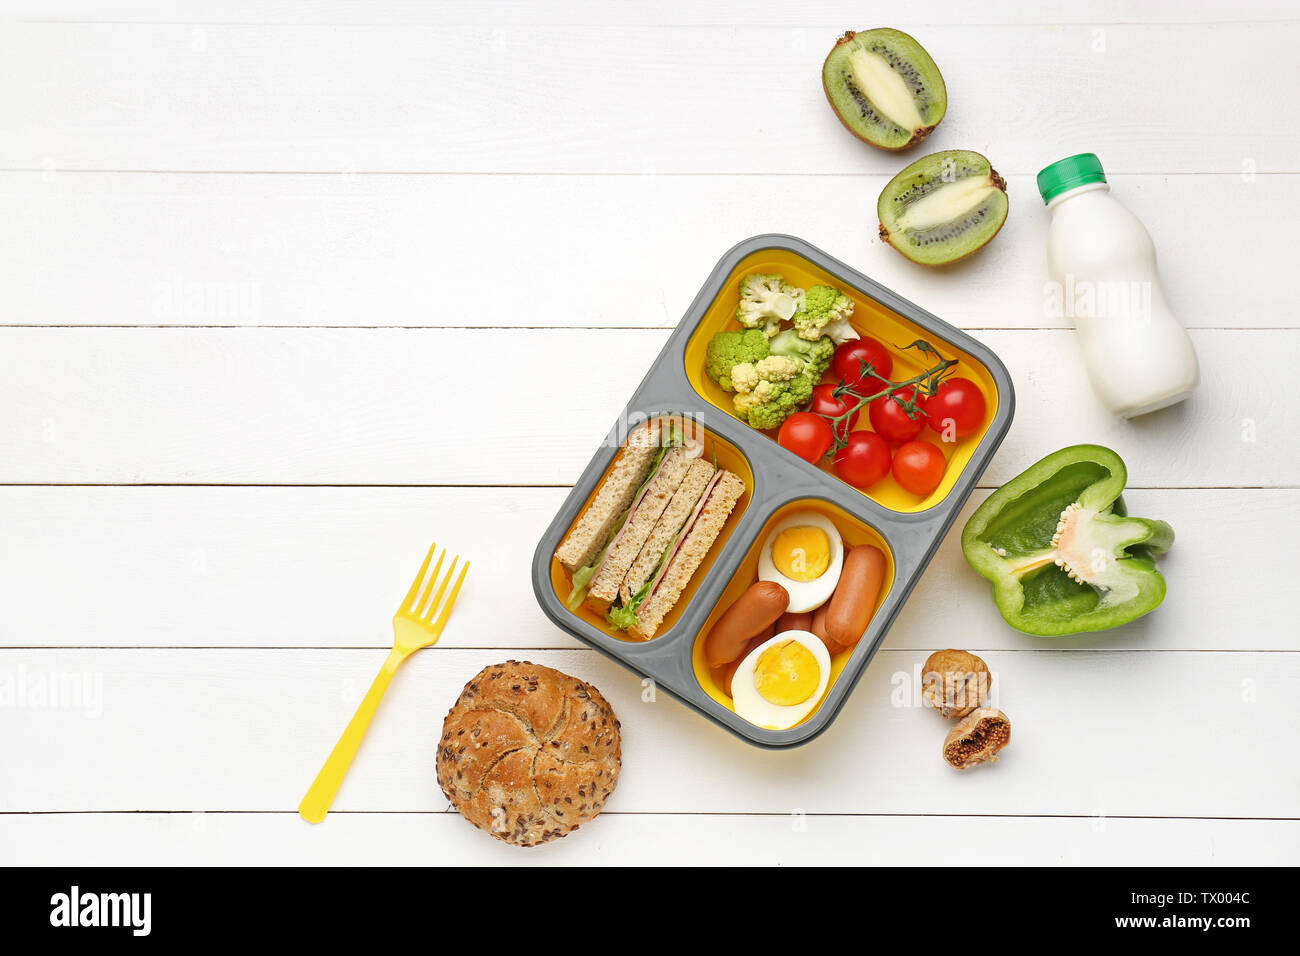 Lunch box with tasty food on white wooden background - Stock Image